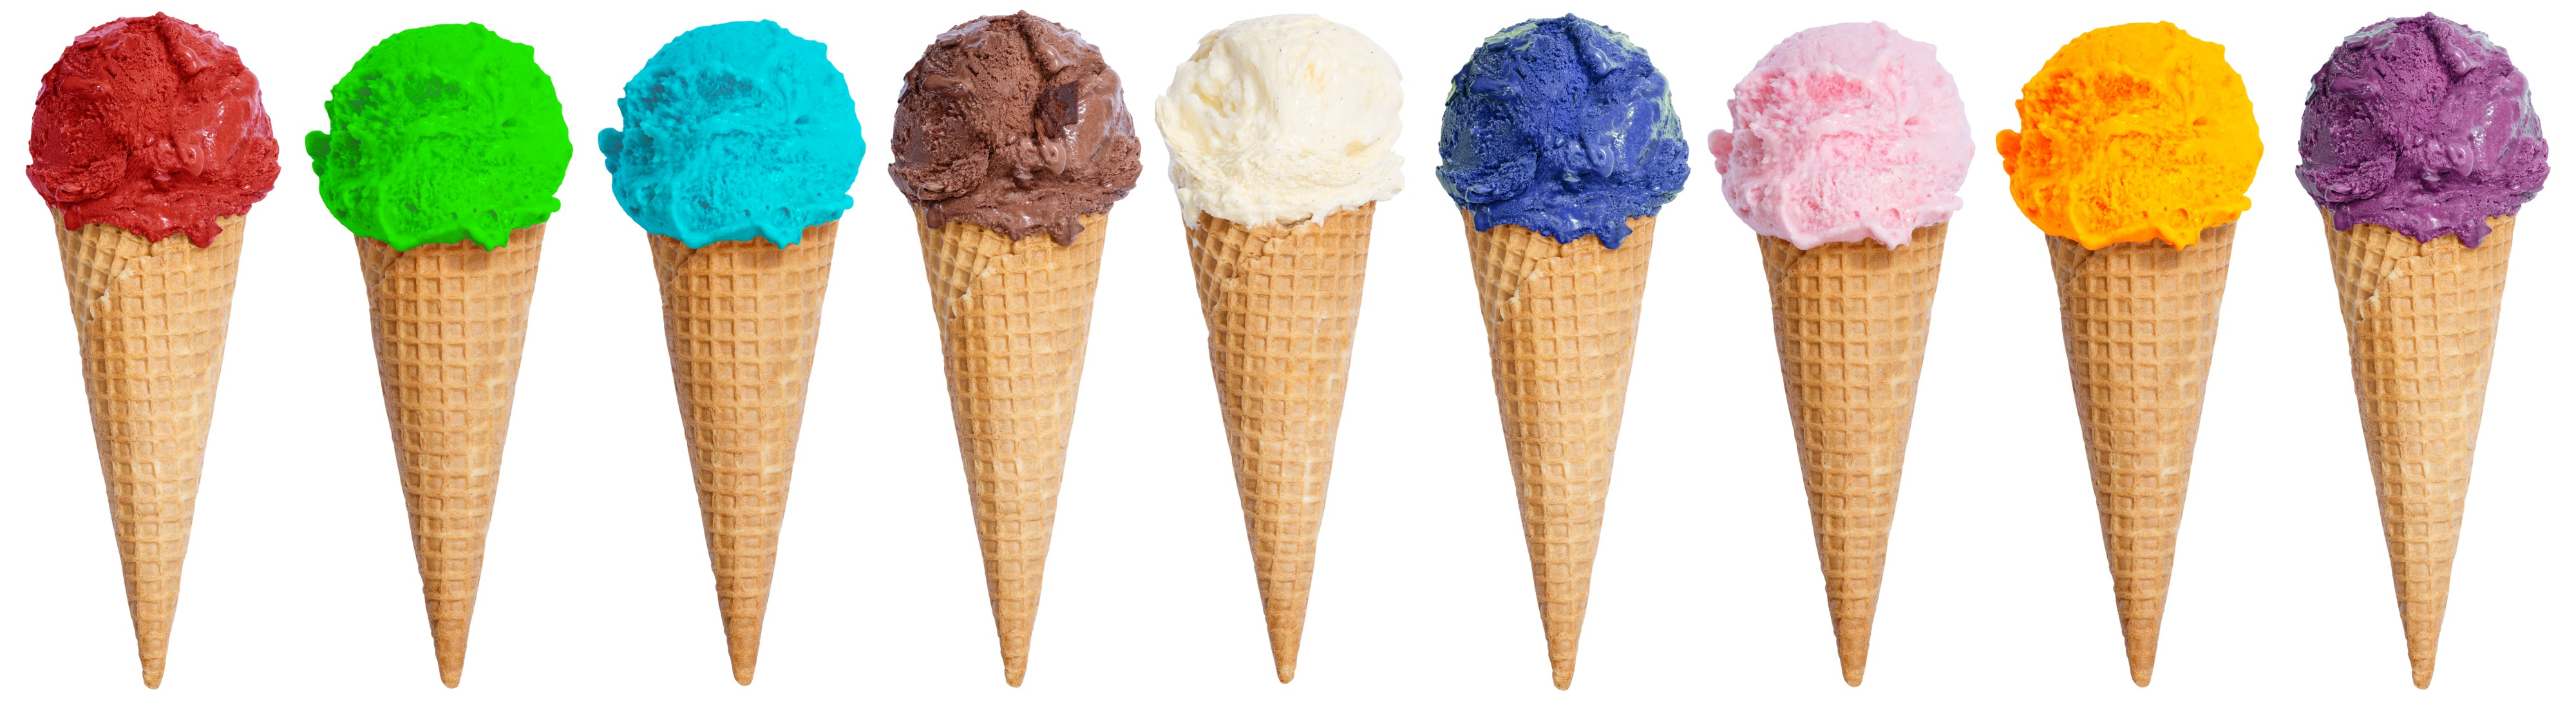 Variety of ice-cream flavour options available - showing 32 ice-cream lavours to show the number of options available.